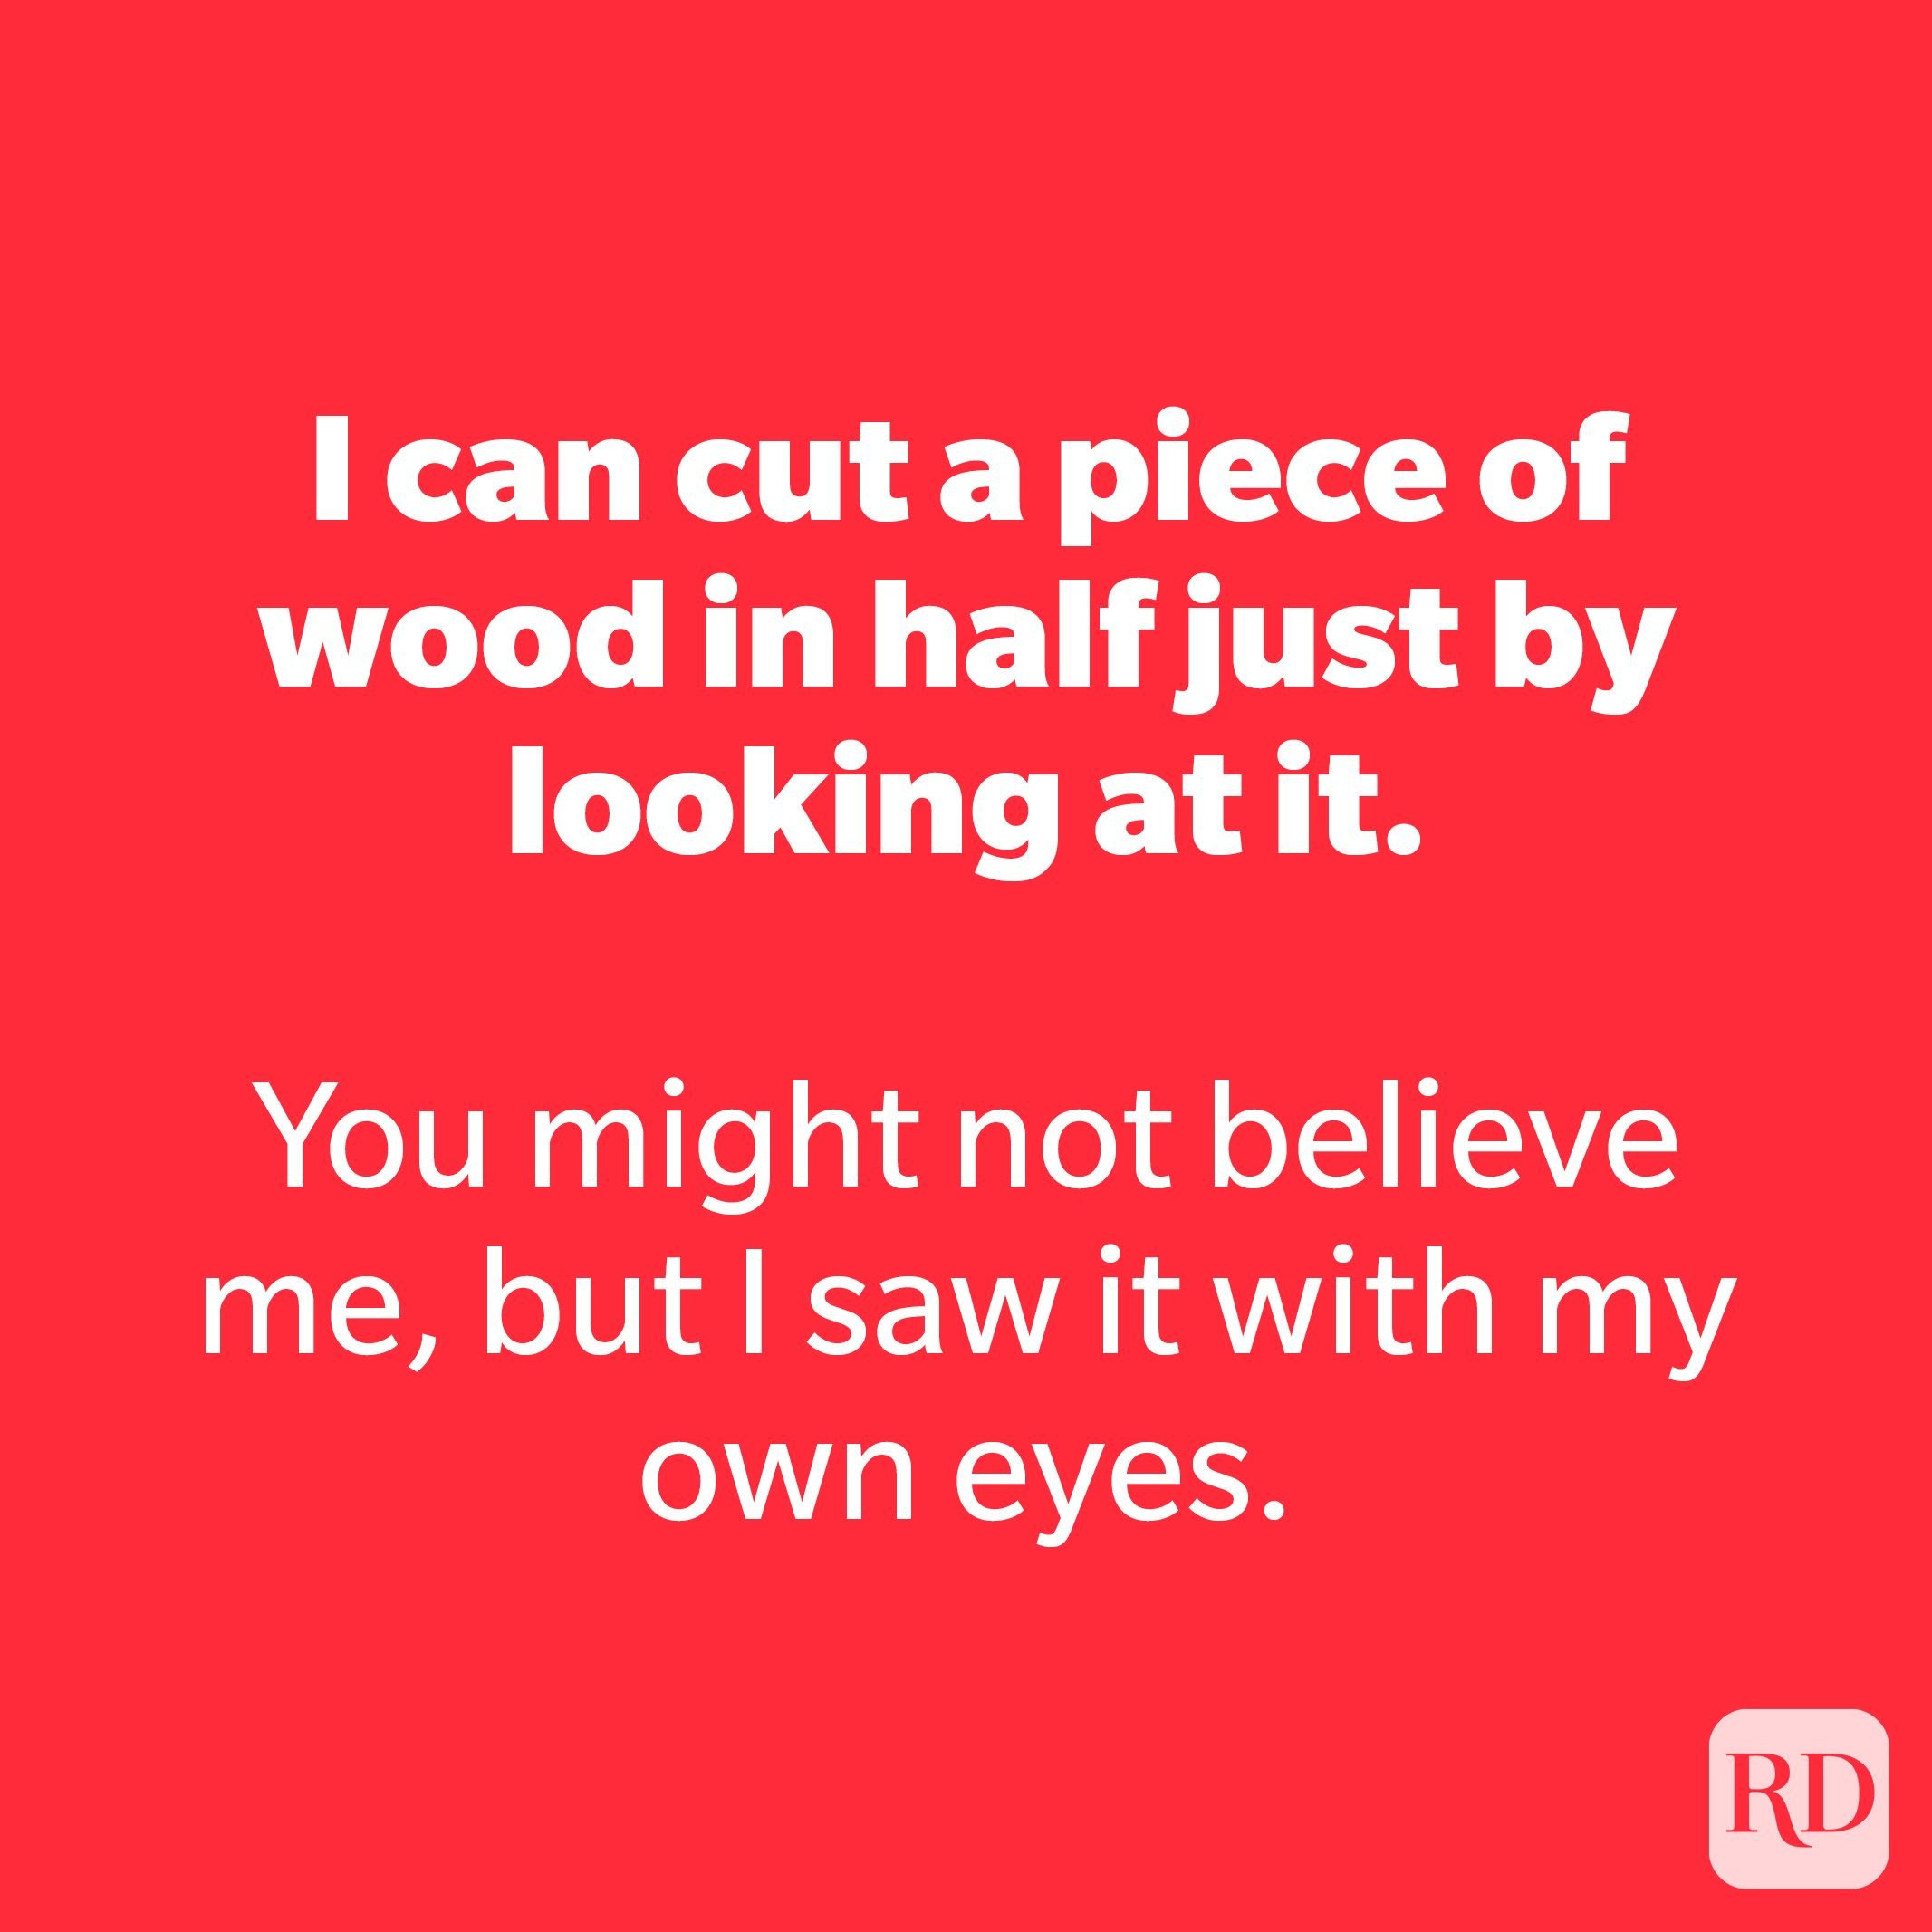 I can cut a piece of wood in half just by looking at it.